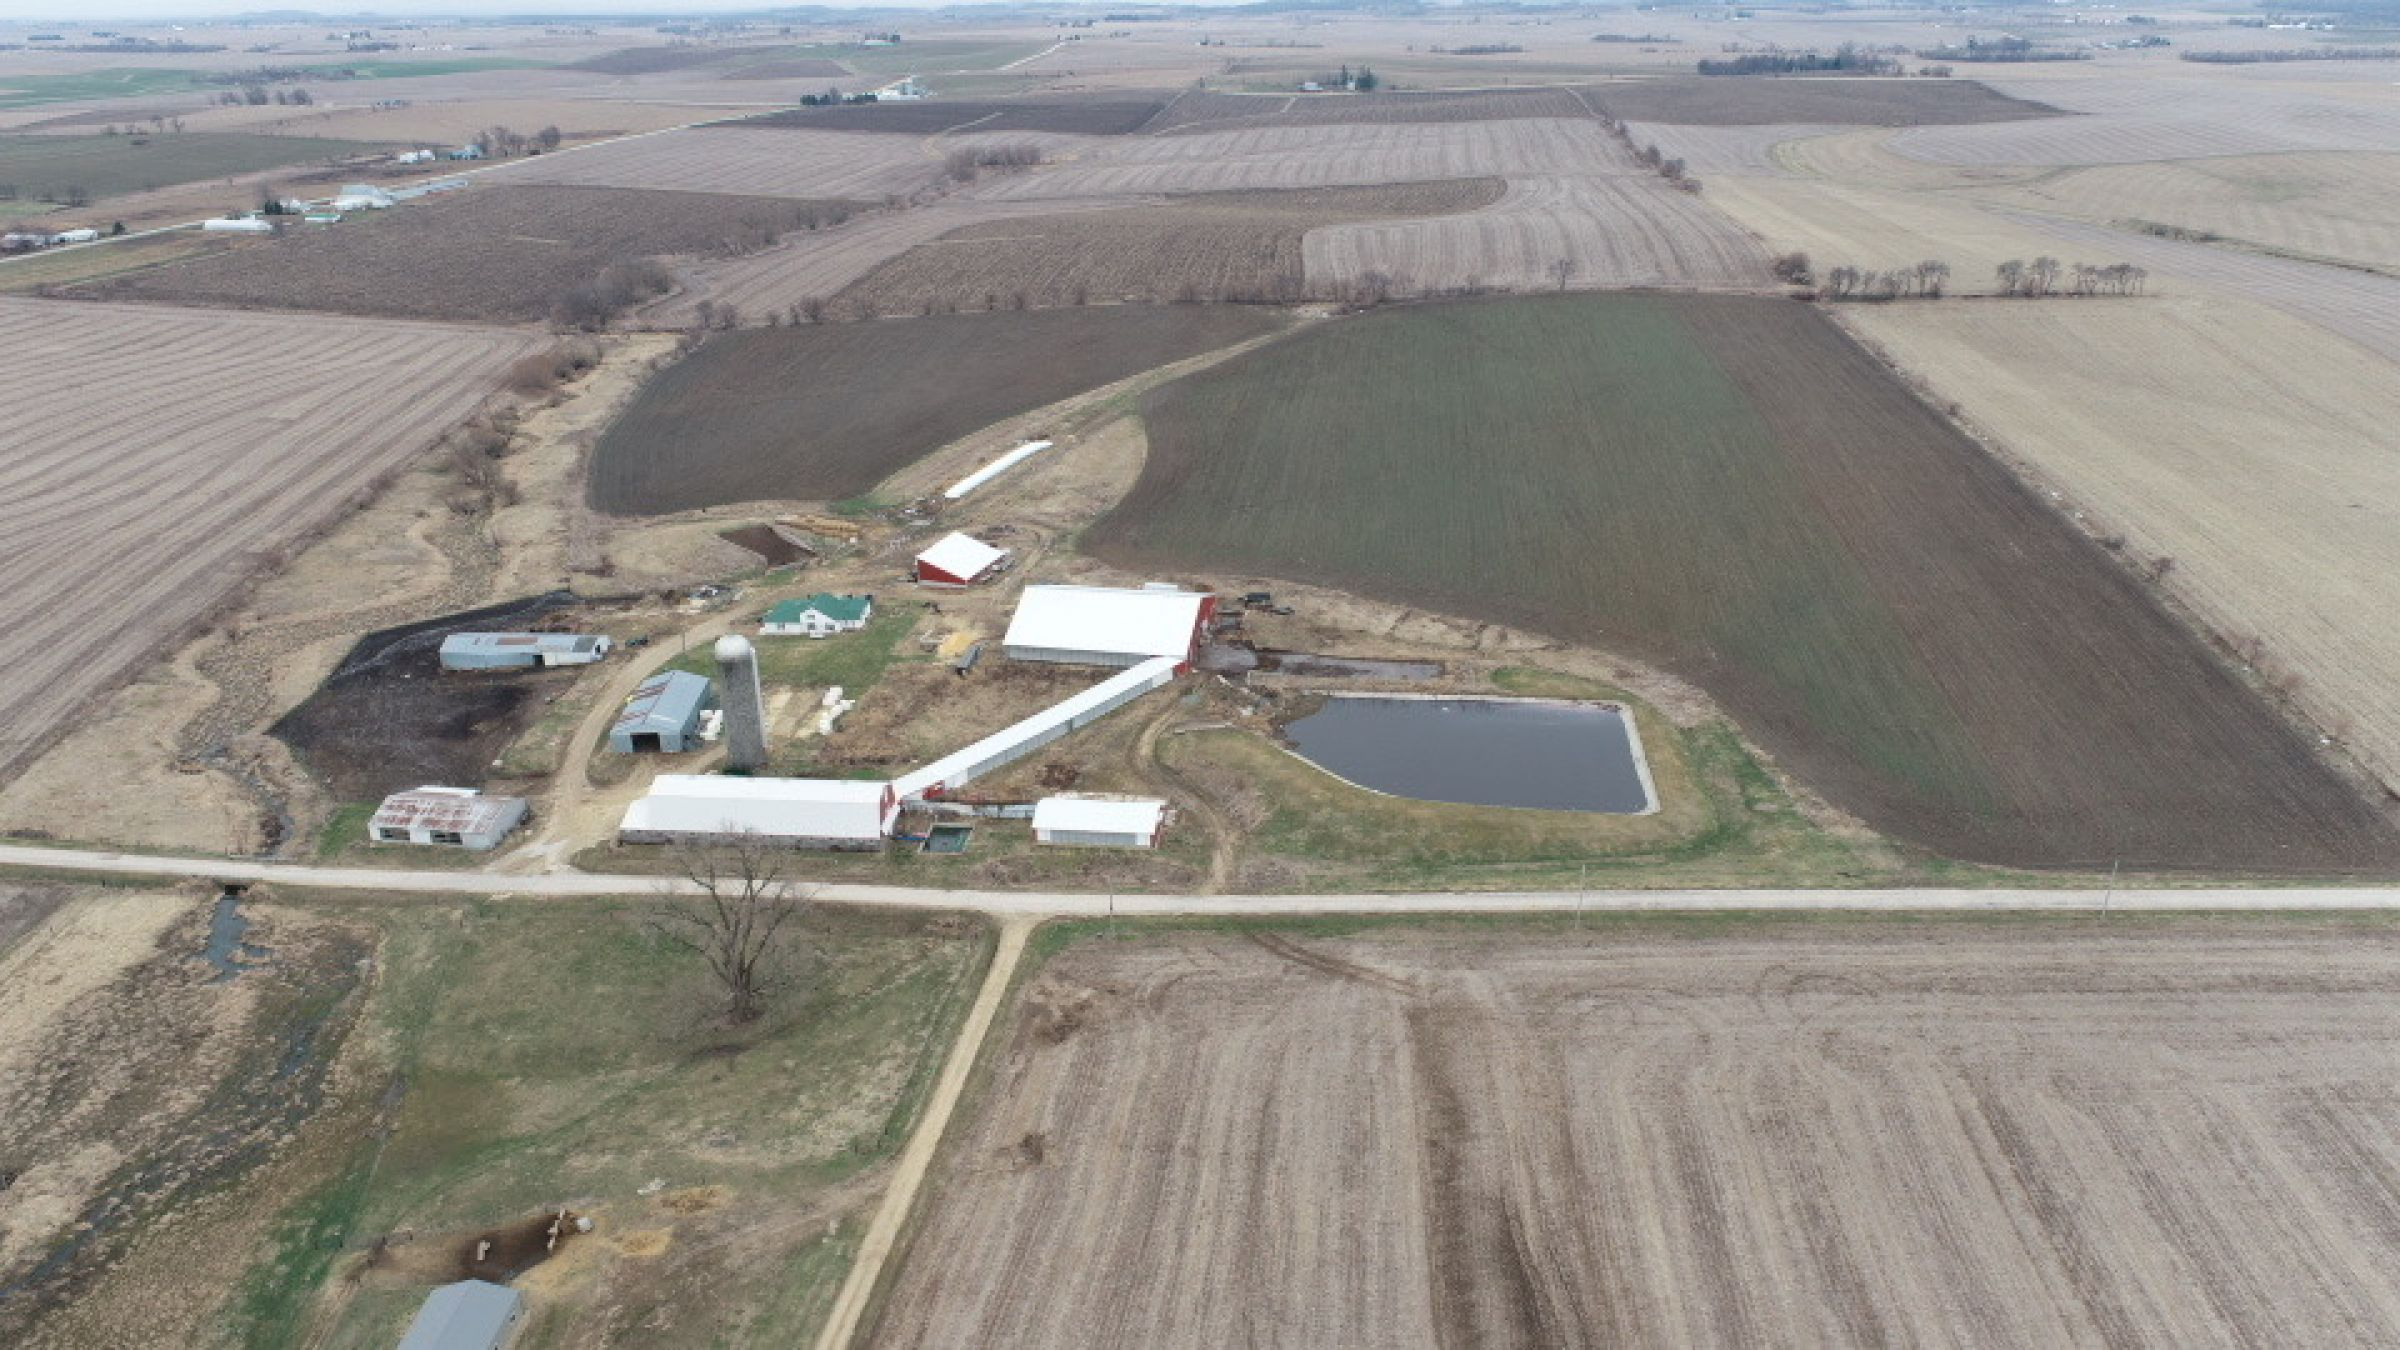 land-lafayette-county-wisconsin-47-acres-listing-number-15428-19-2021-03-25-172105.JPG